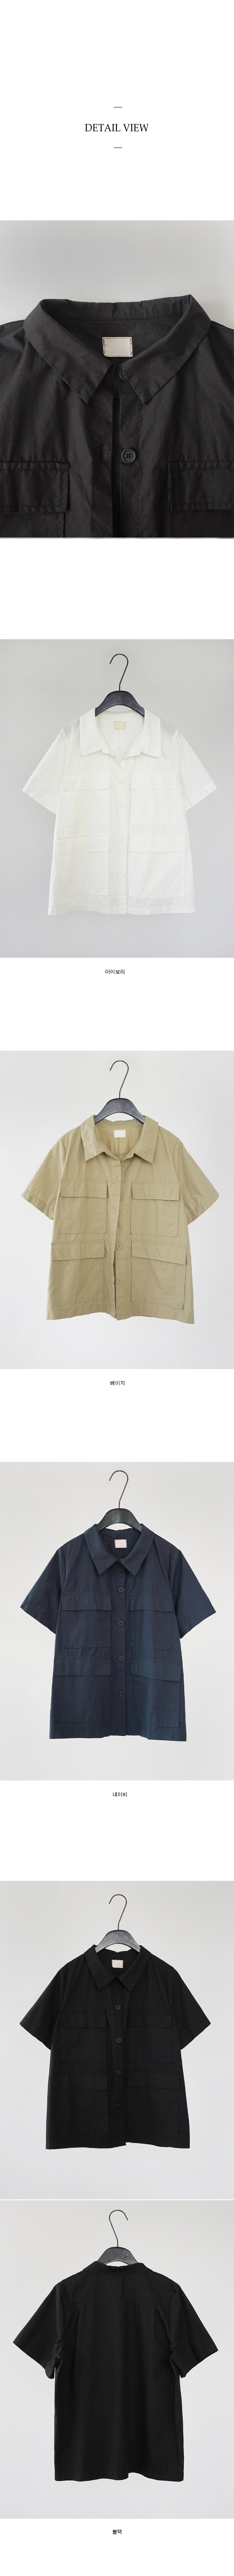 safari pocket shirt (4colors)